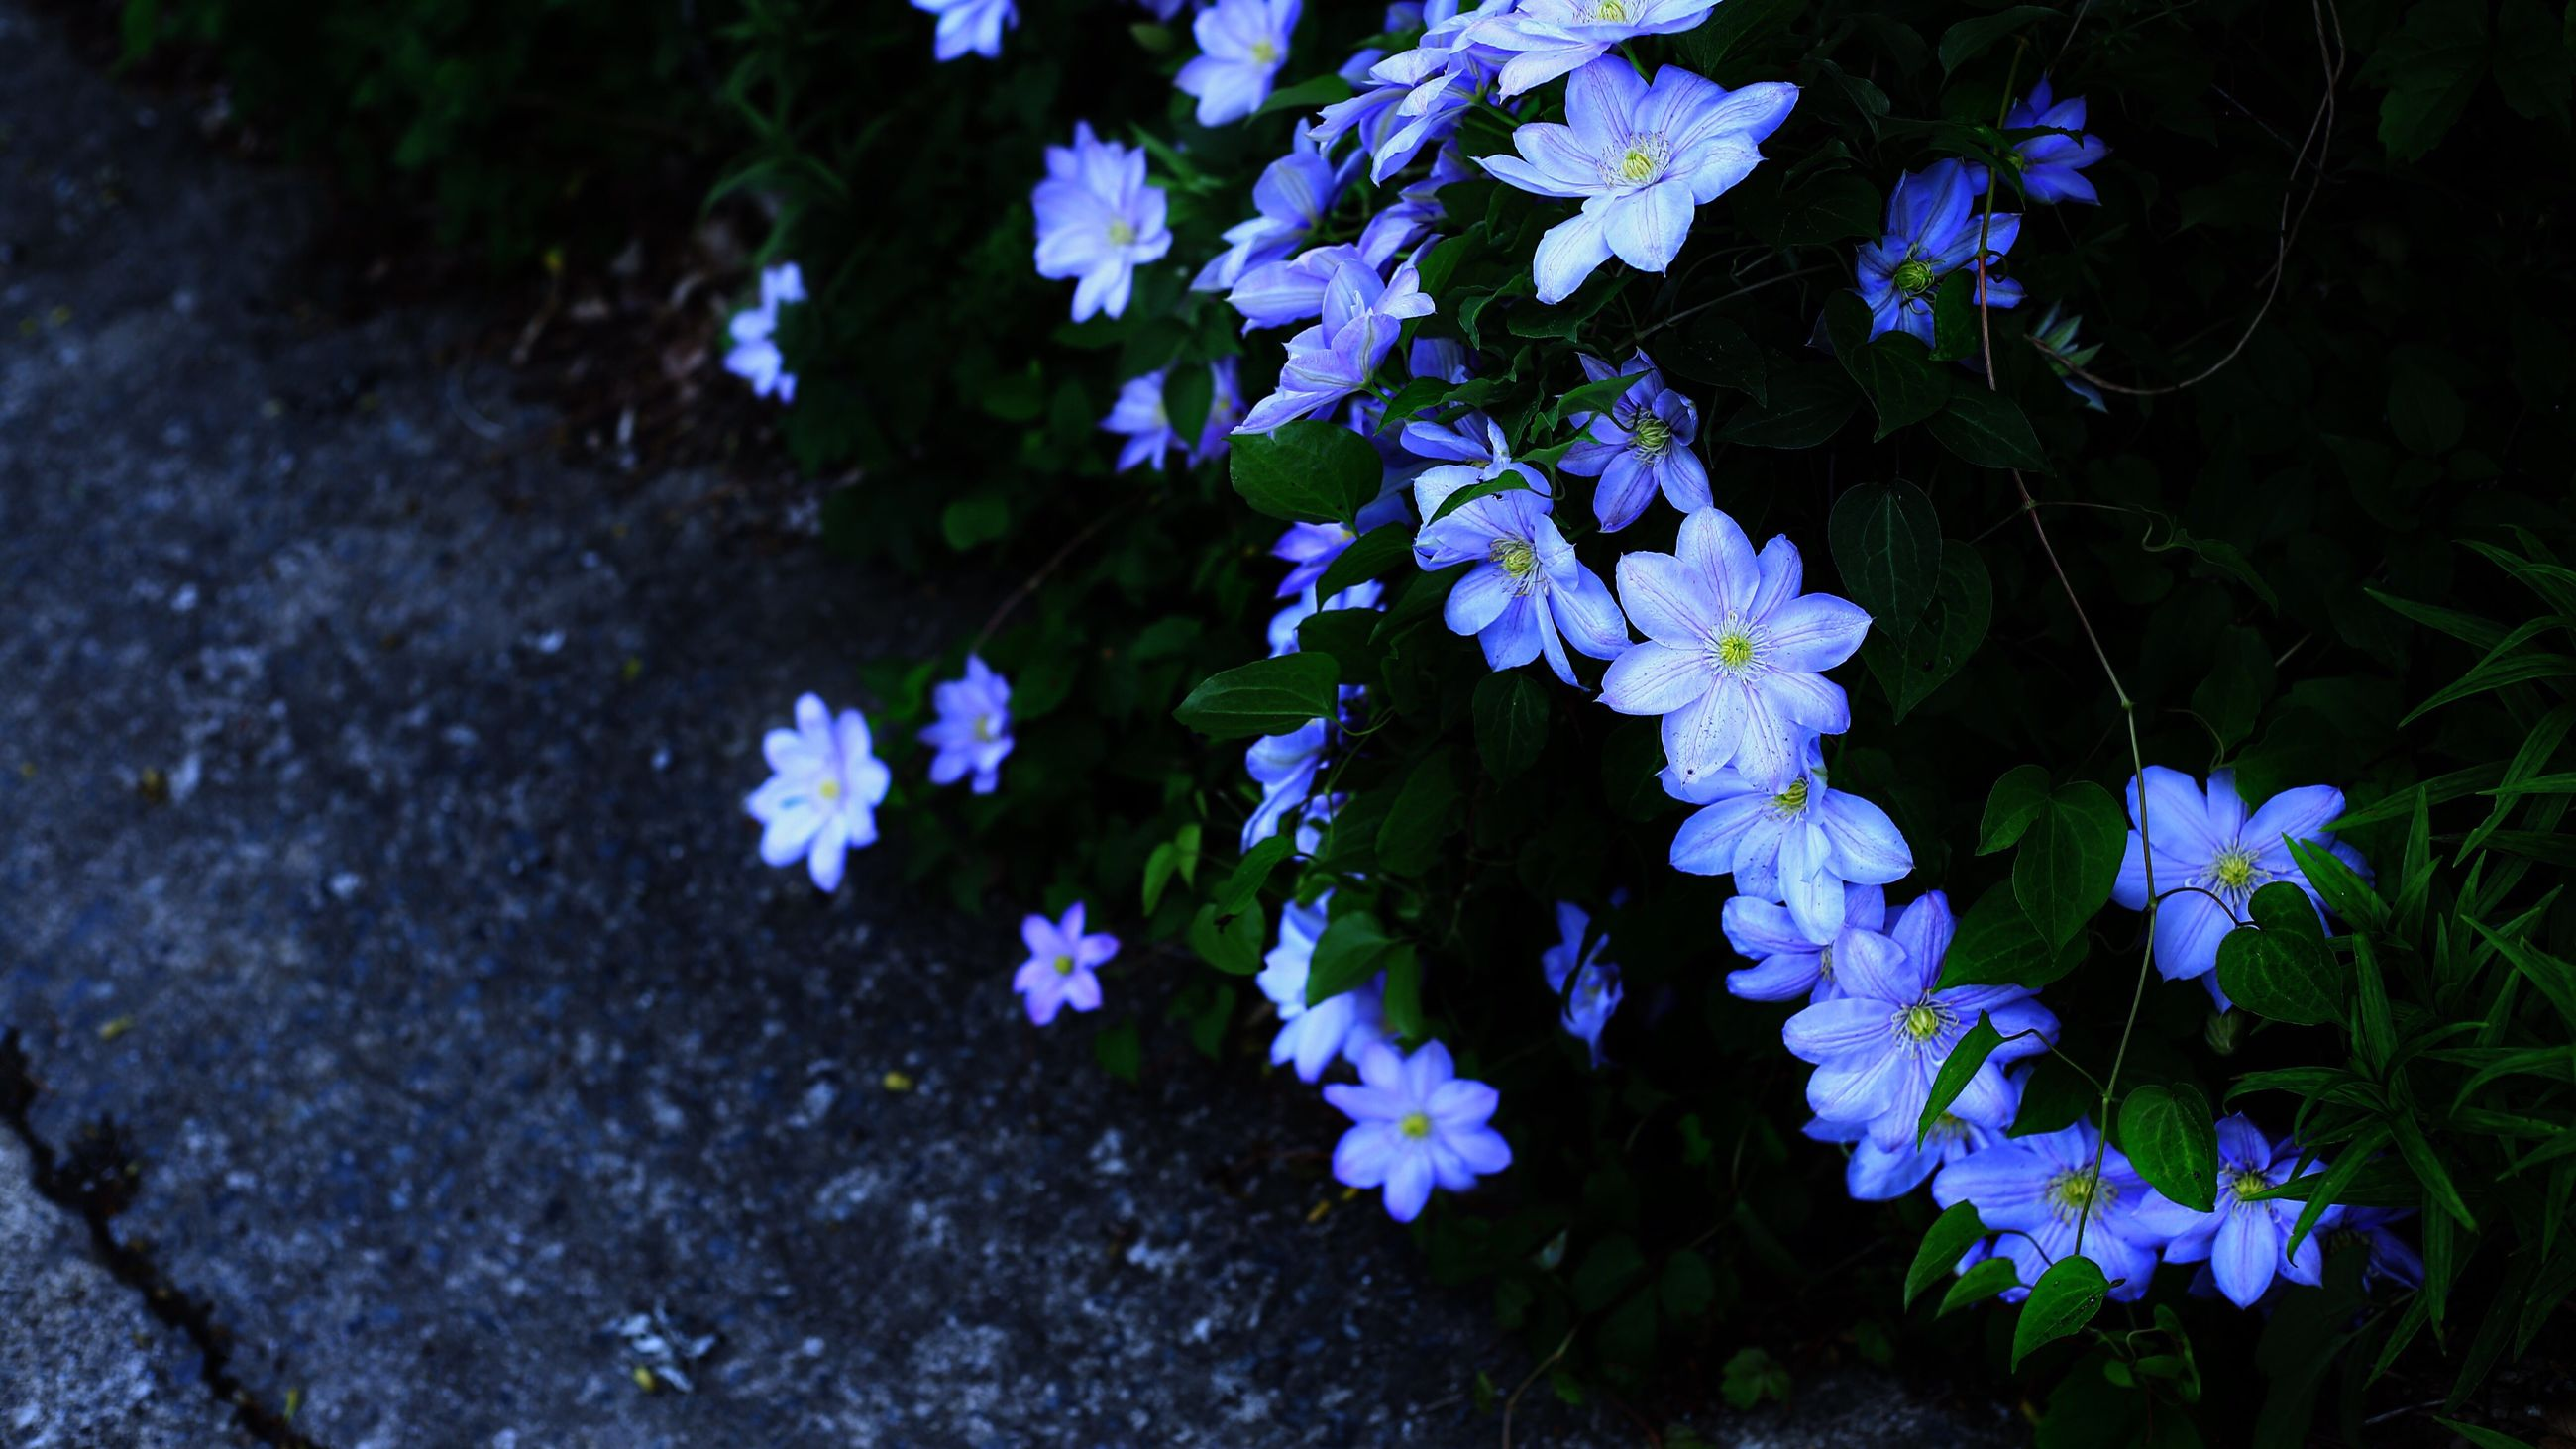 flower, fragility, nature, growth, beauty in nature, petal, freshness, plant, purple, outdoors, day, flower head, blooming, no people, close-up